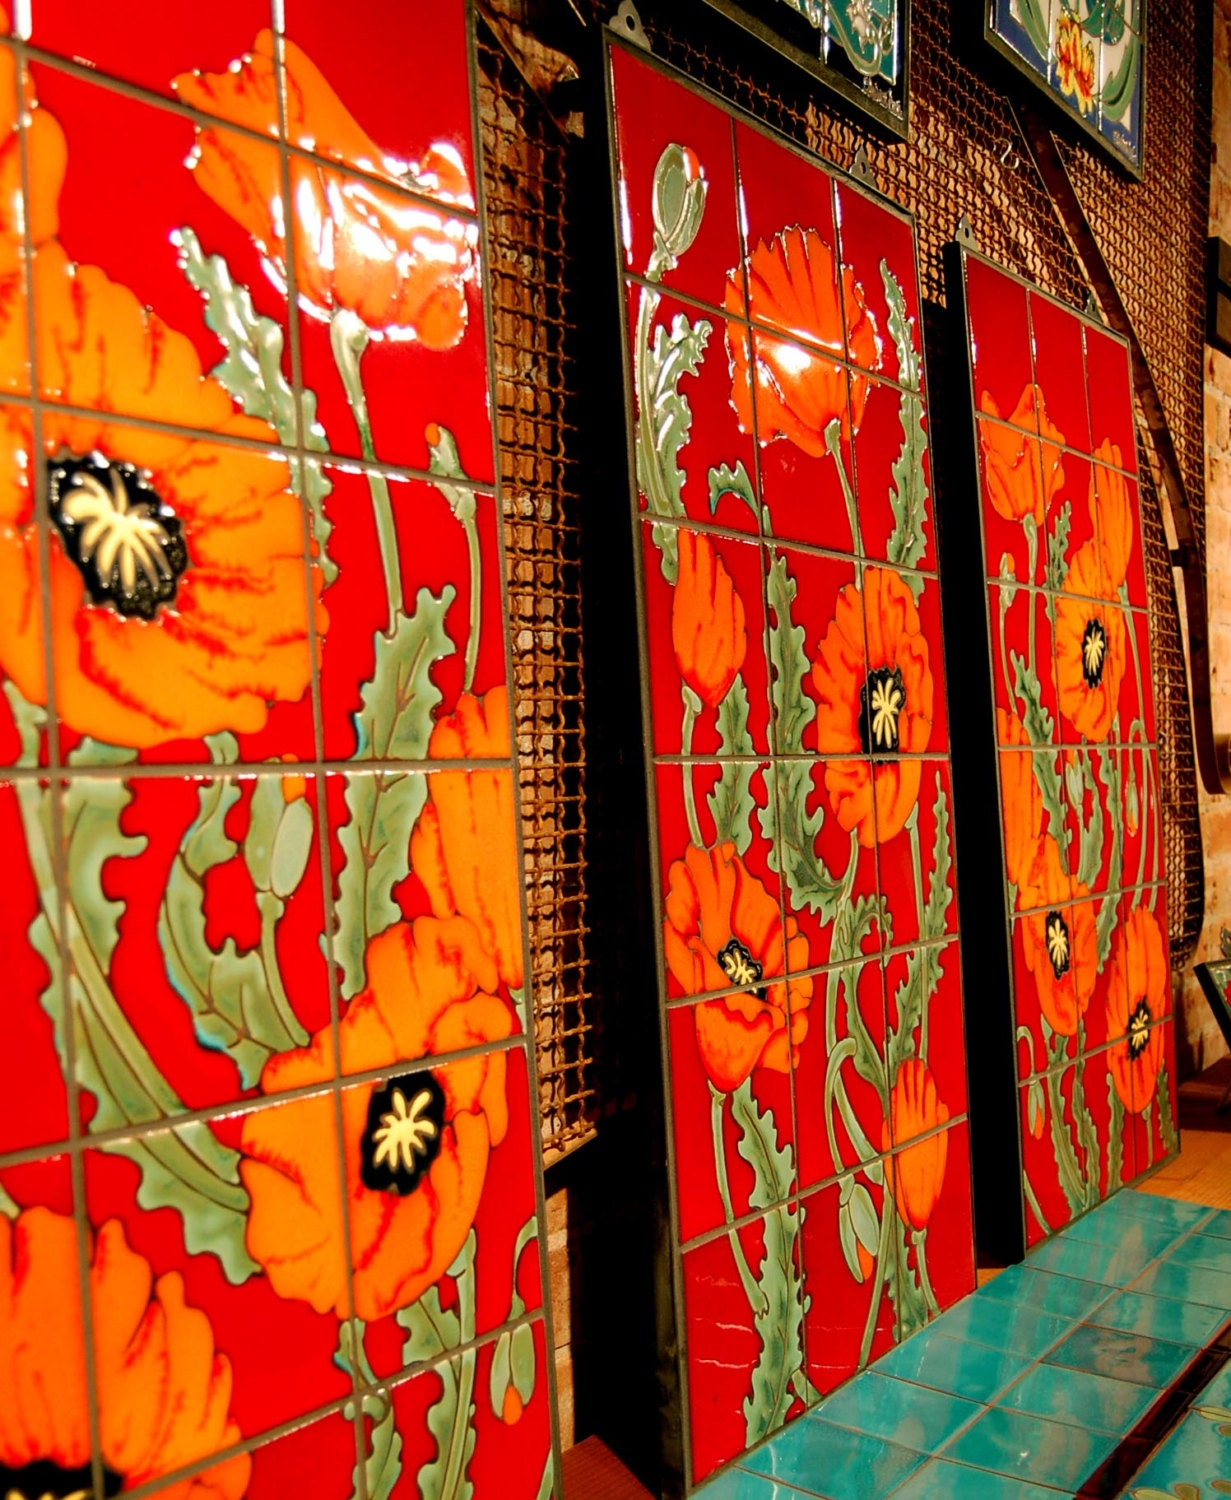 Red Amp Orange Poppies Hand Glazed Tile Mural Triptych